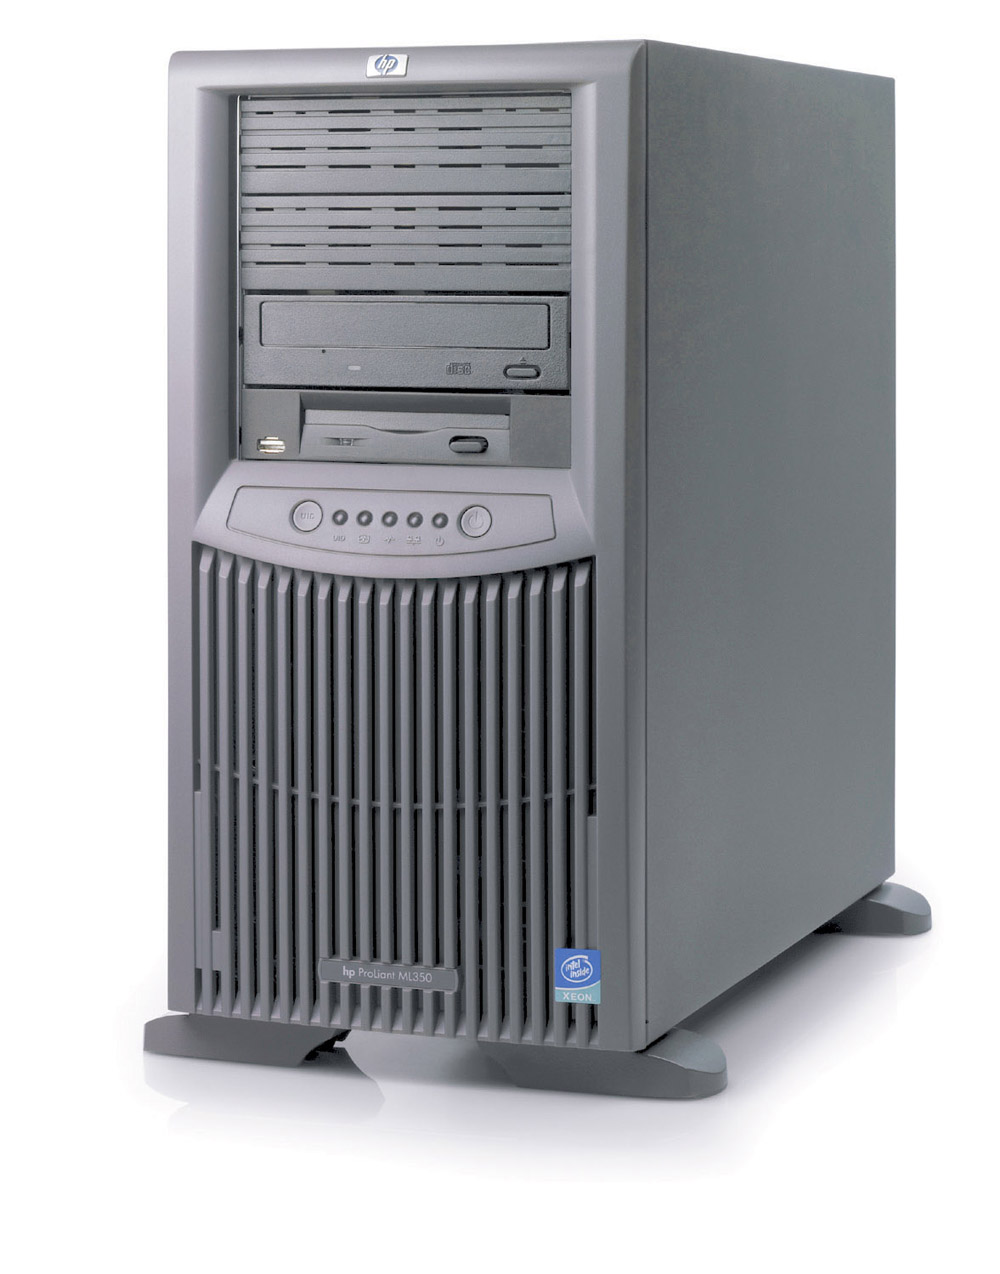 Сервер HP ProLiant ML350 G4 Server Tower XeonDP-3.0/1Mb/800MHz,   512Mb PC2700/333MHz, 36Gb 15000 rpm Ultra320-SCSI (max. 4x72.8Gb+2x300Gb), NHP, 6/6 PCI, CD, FDD, Gigabit NIC, 1x460Watt